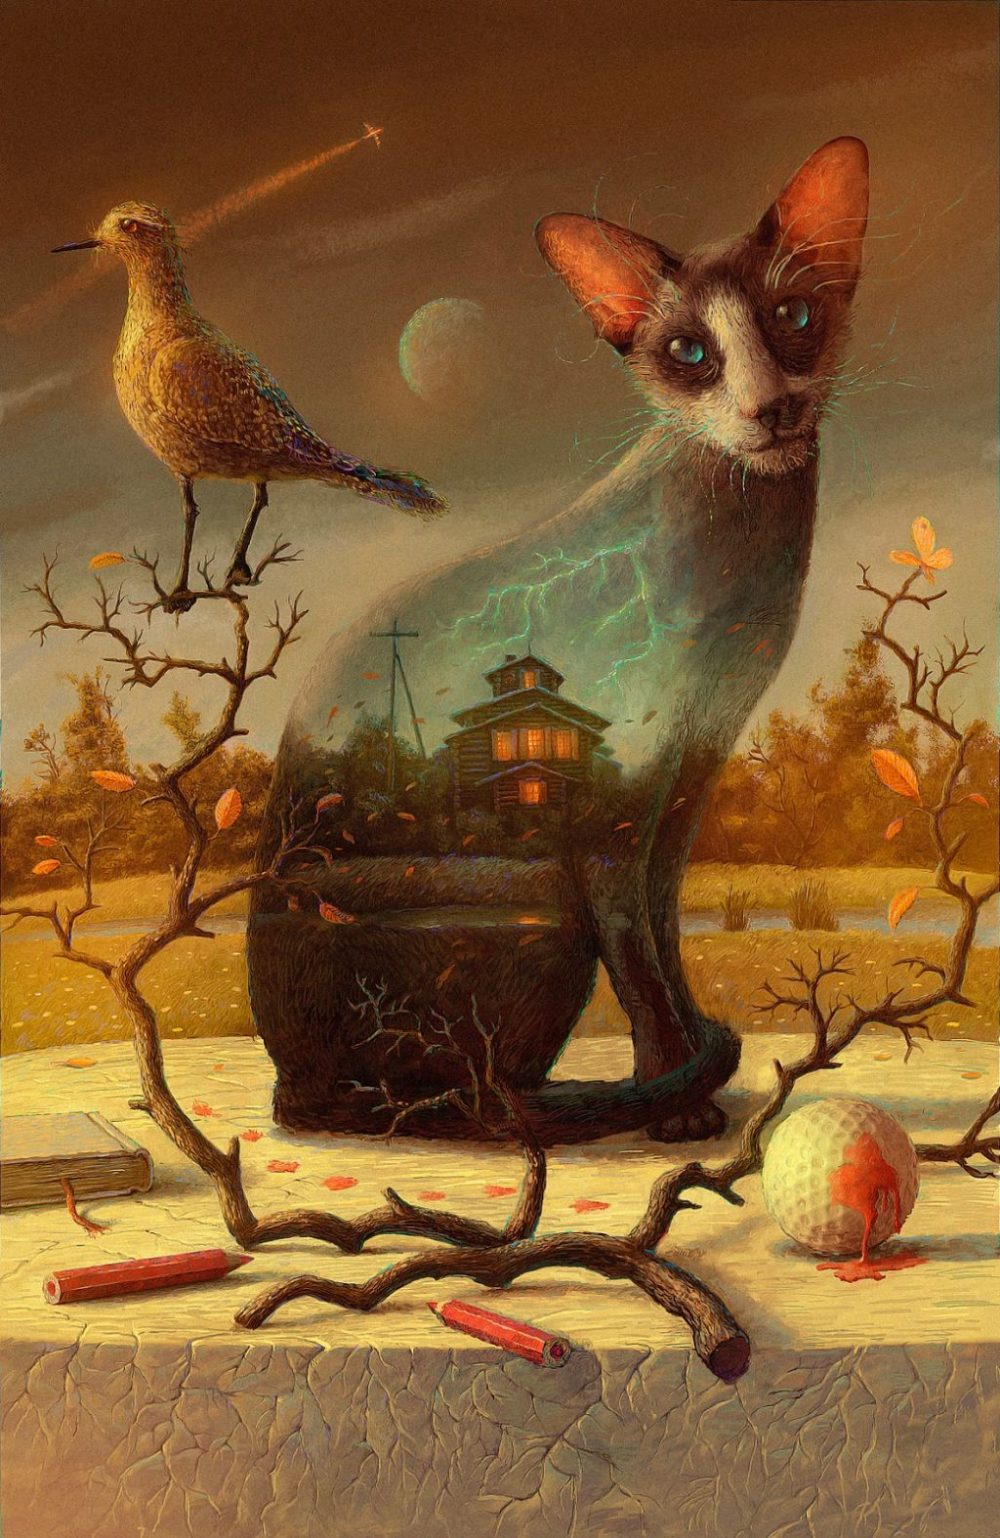 Surreal And Imaginative Book Illustrations By Andrew Ferez 4